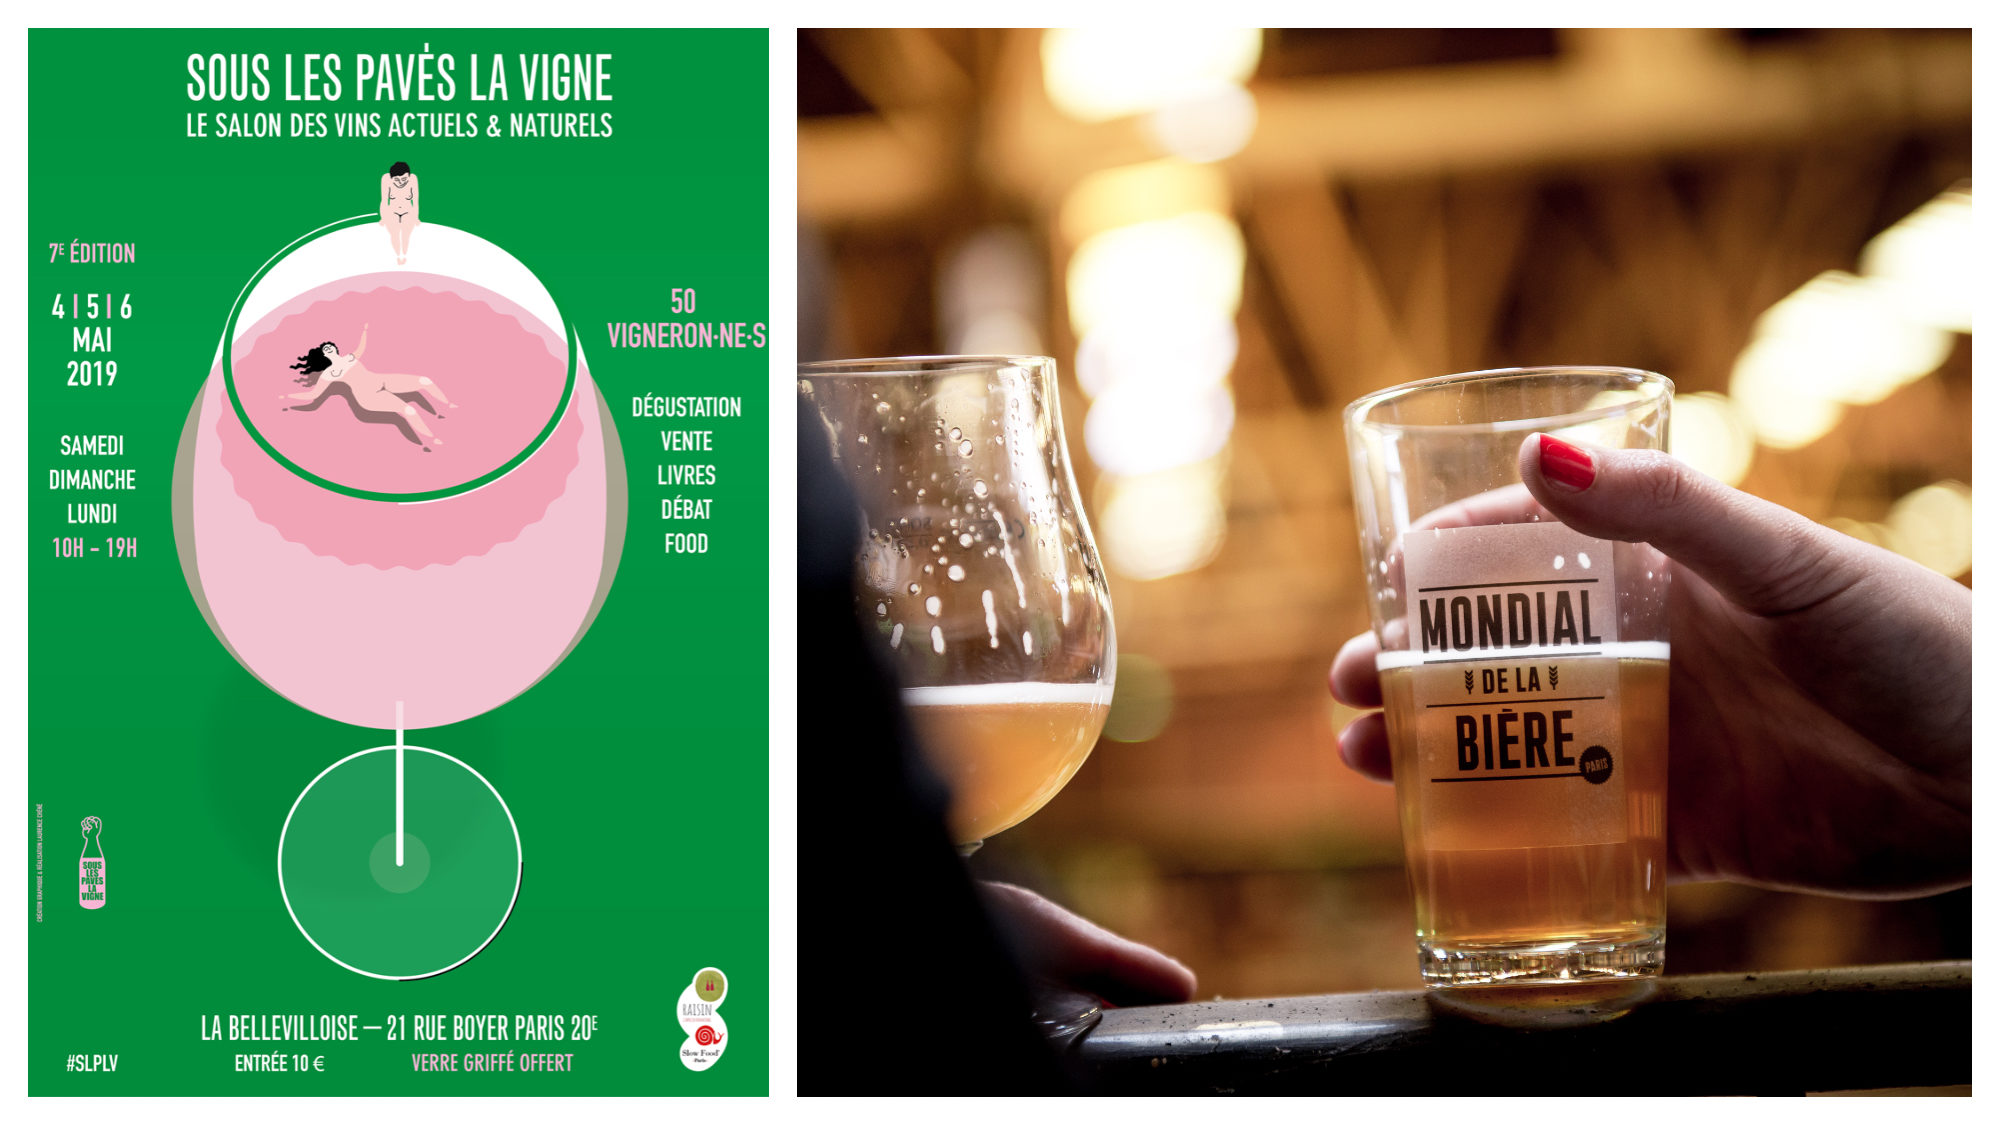 In Paris in May, natural wine tasting event, Sous les Pavés la Vigne takes place at La Bellevilloise (left). A hand holding a 'Mondial de la Bière' beer glass at the Paris Beer Festival this month (right).